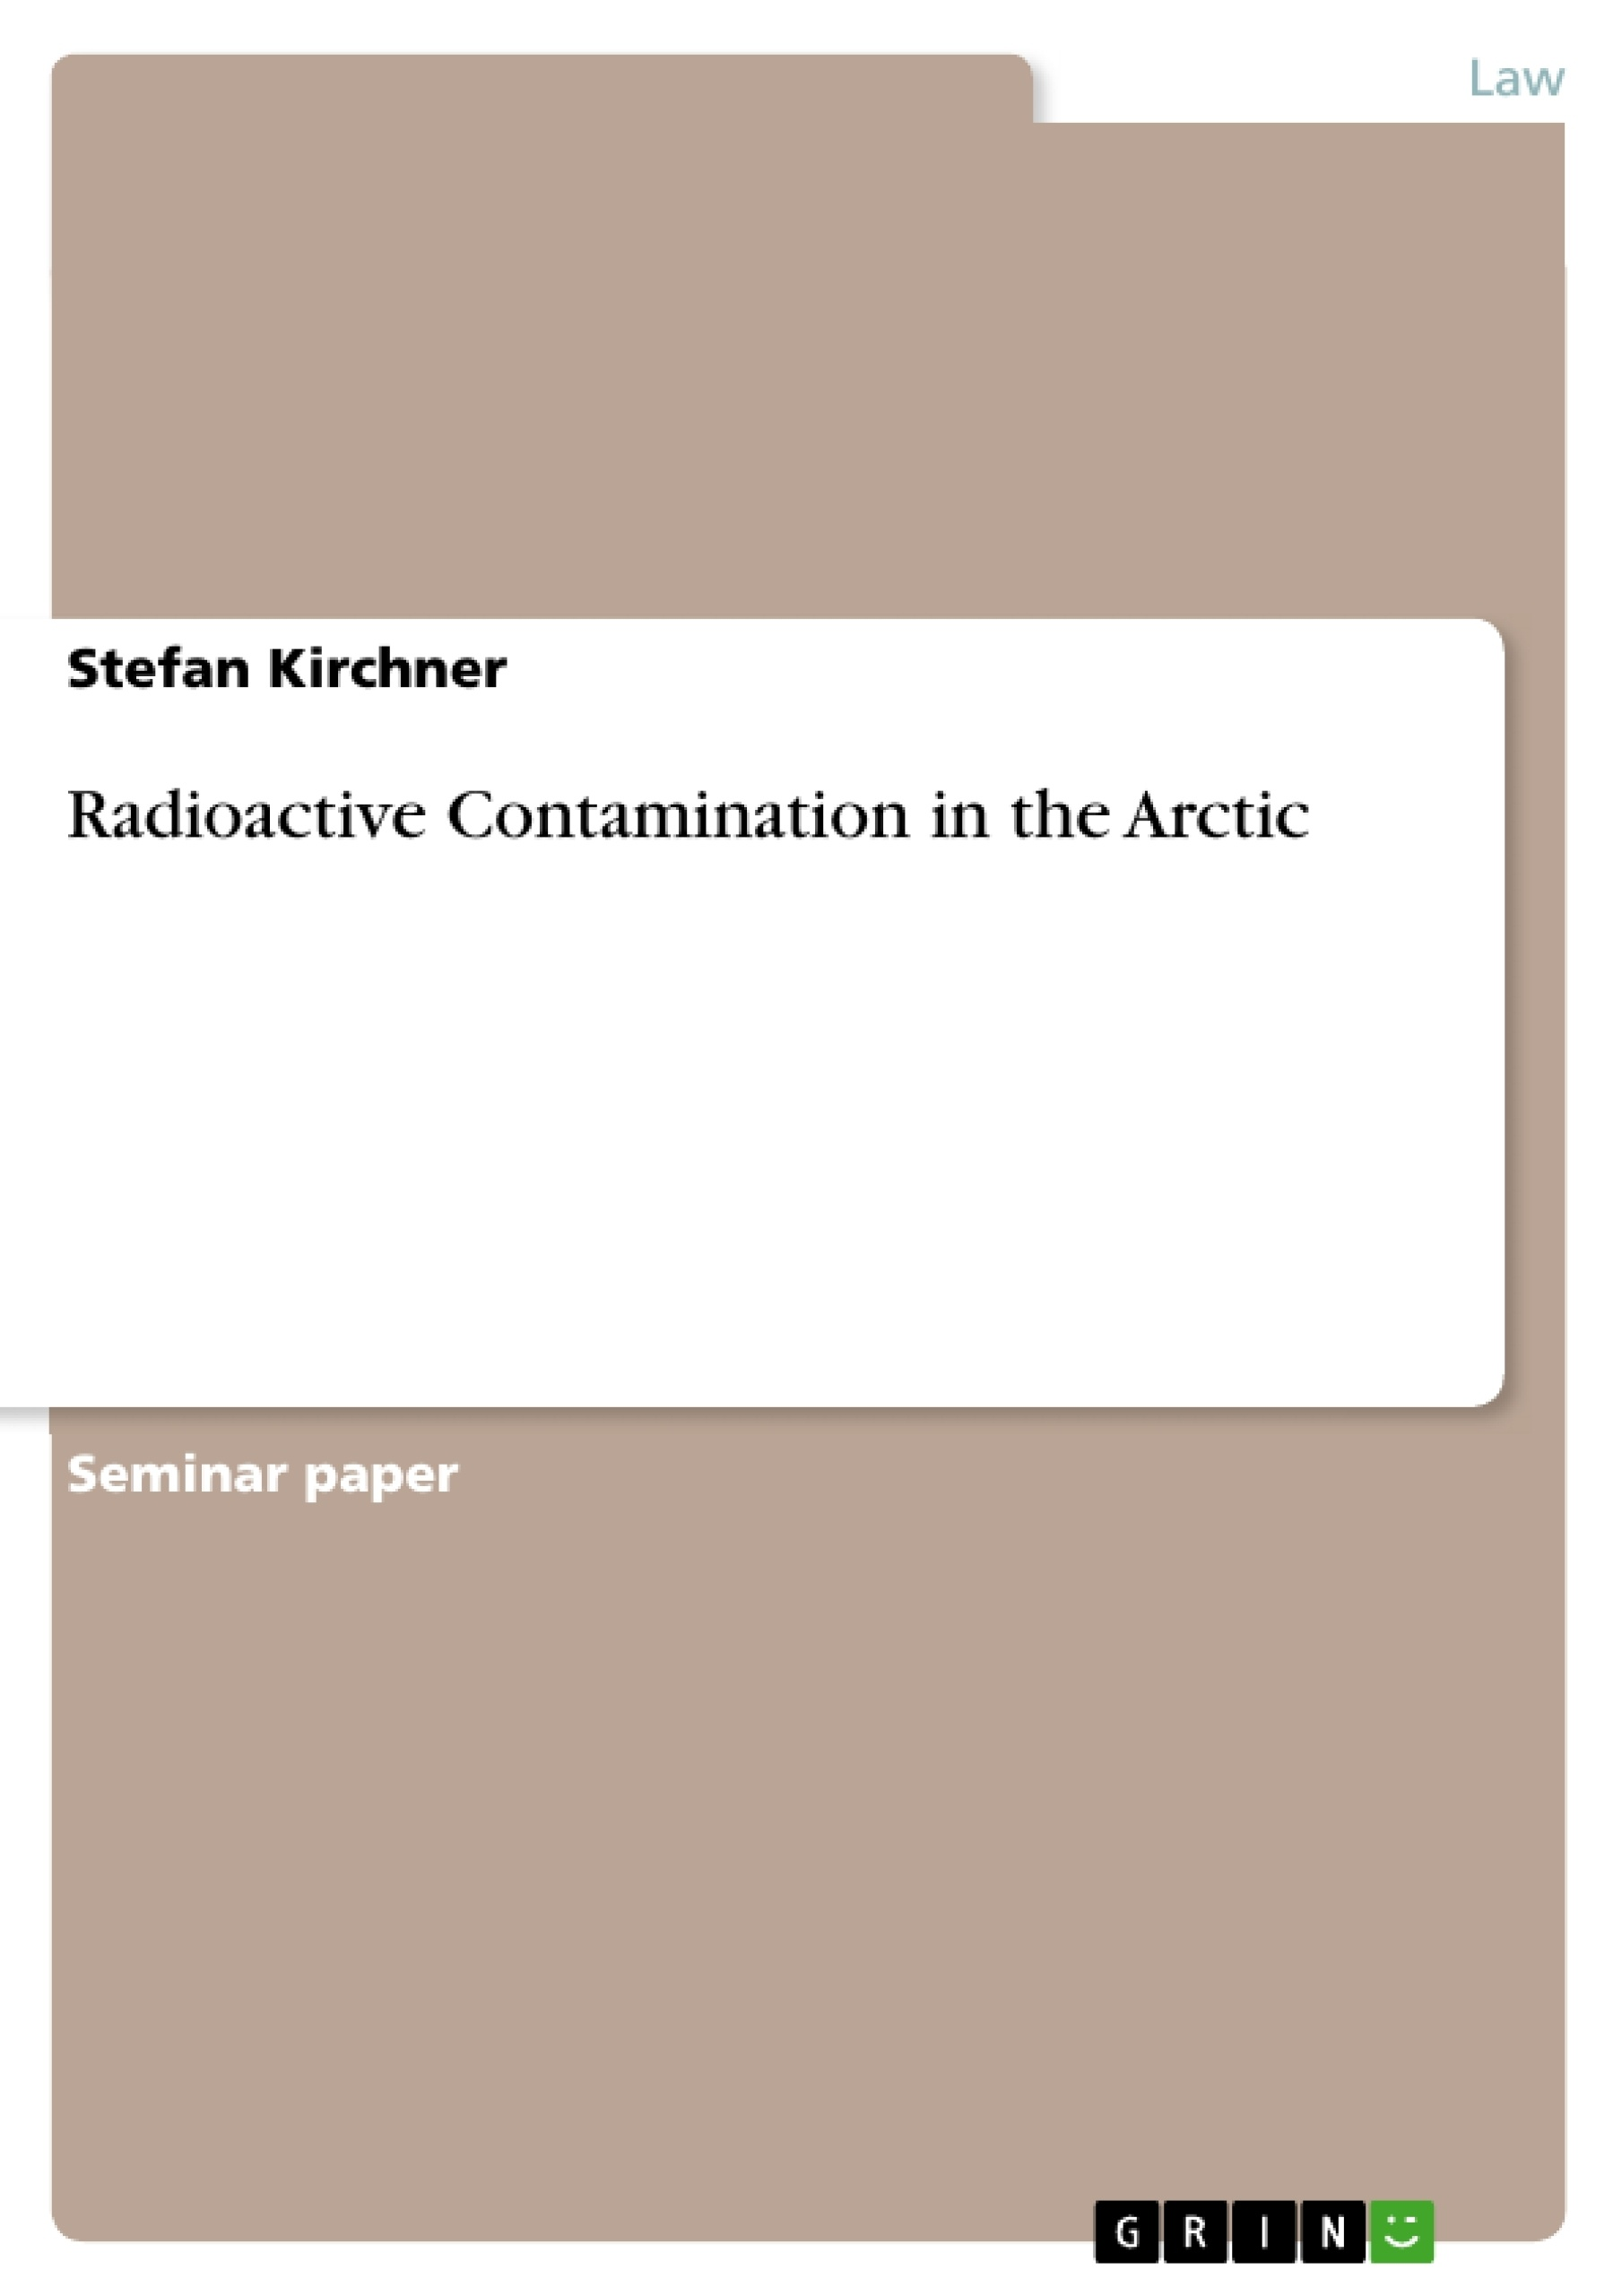 Title: Radioactive Contamination in the Arctic